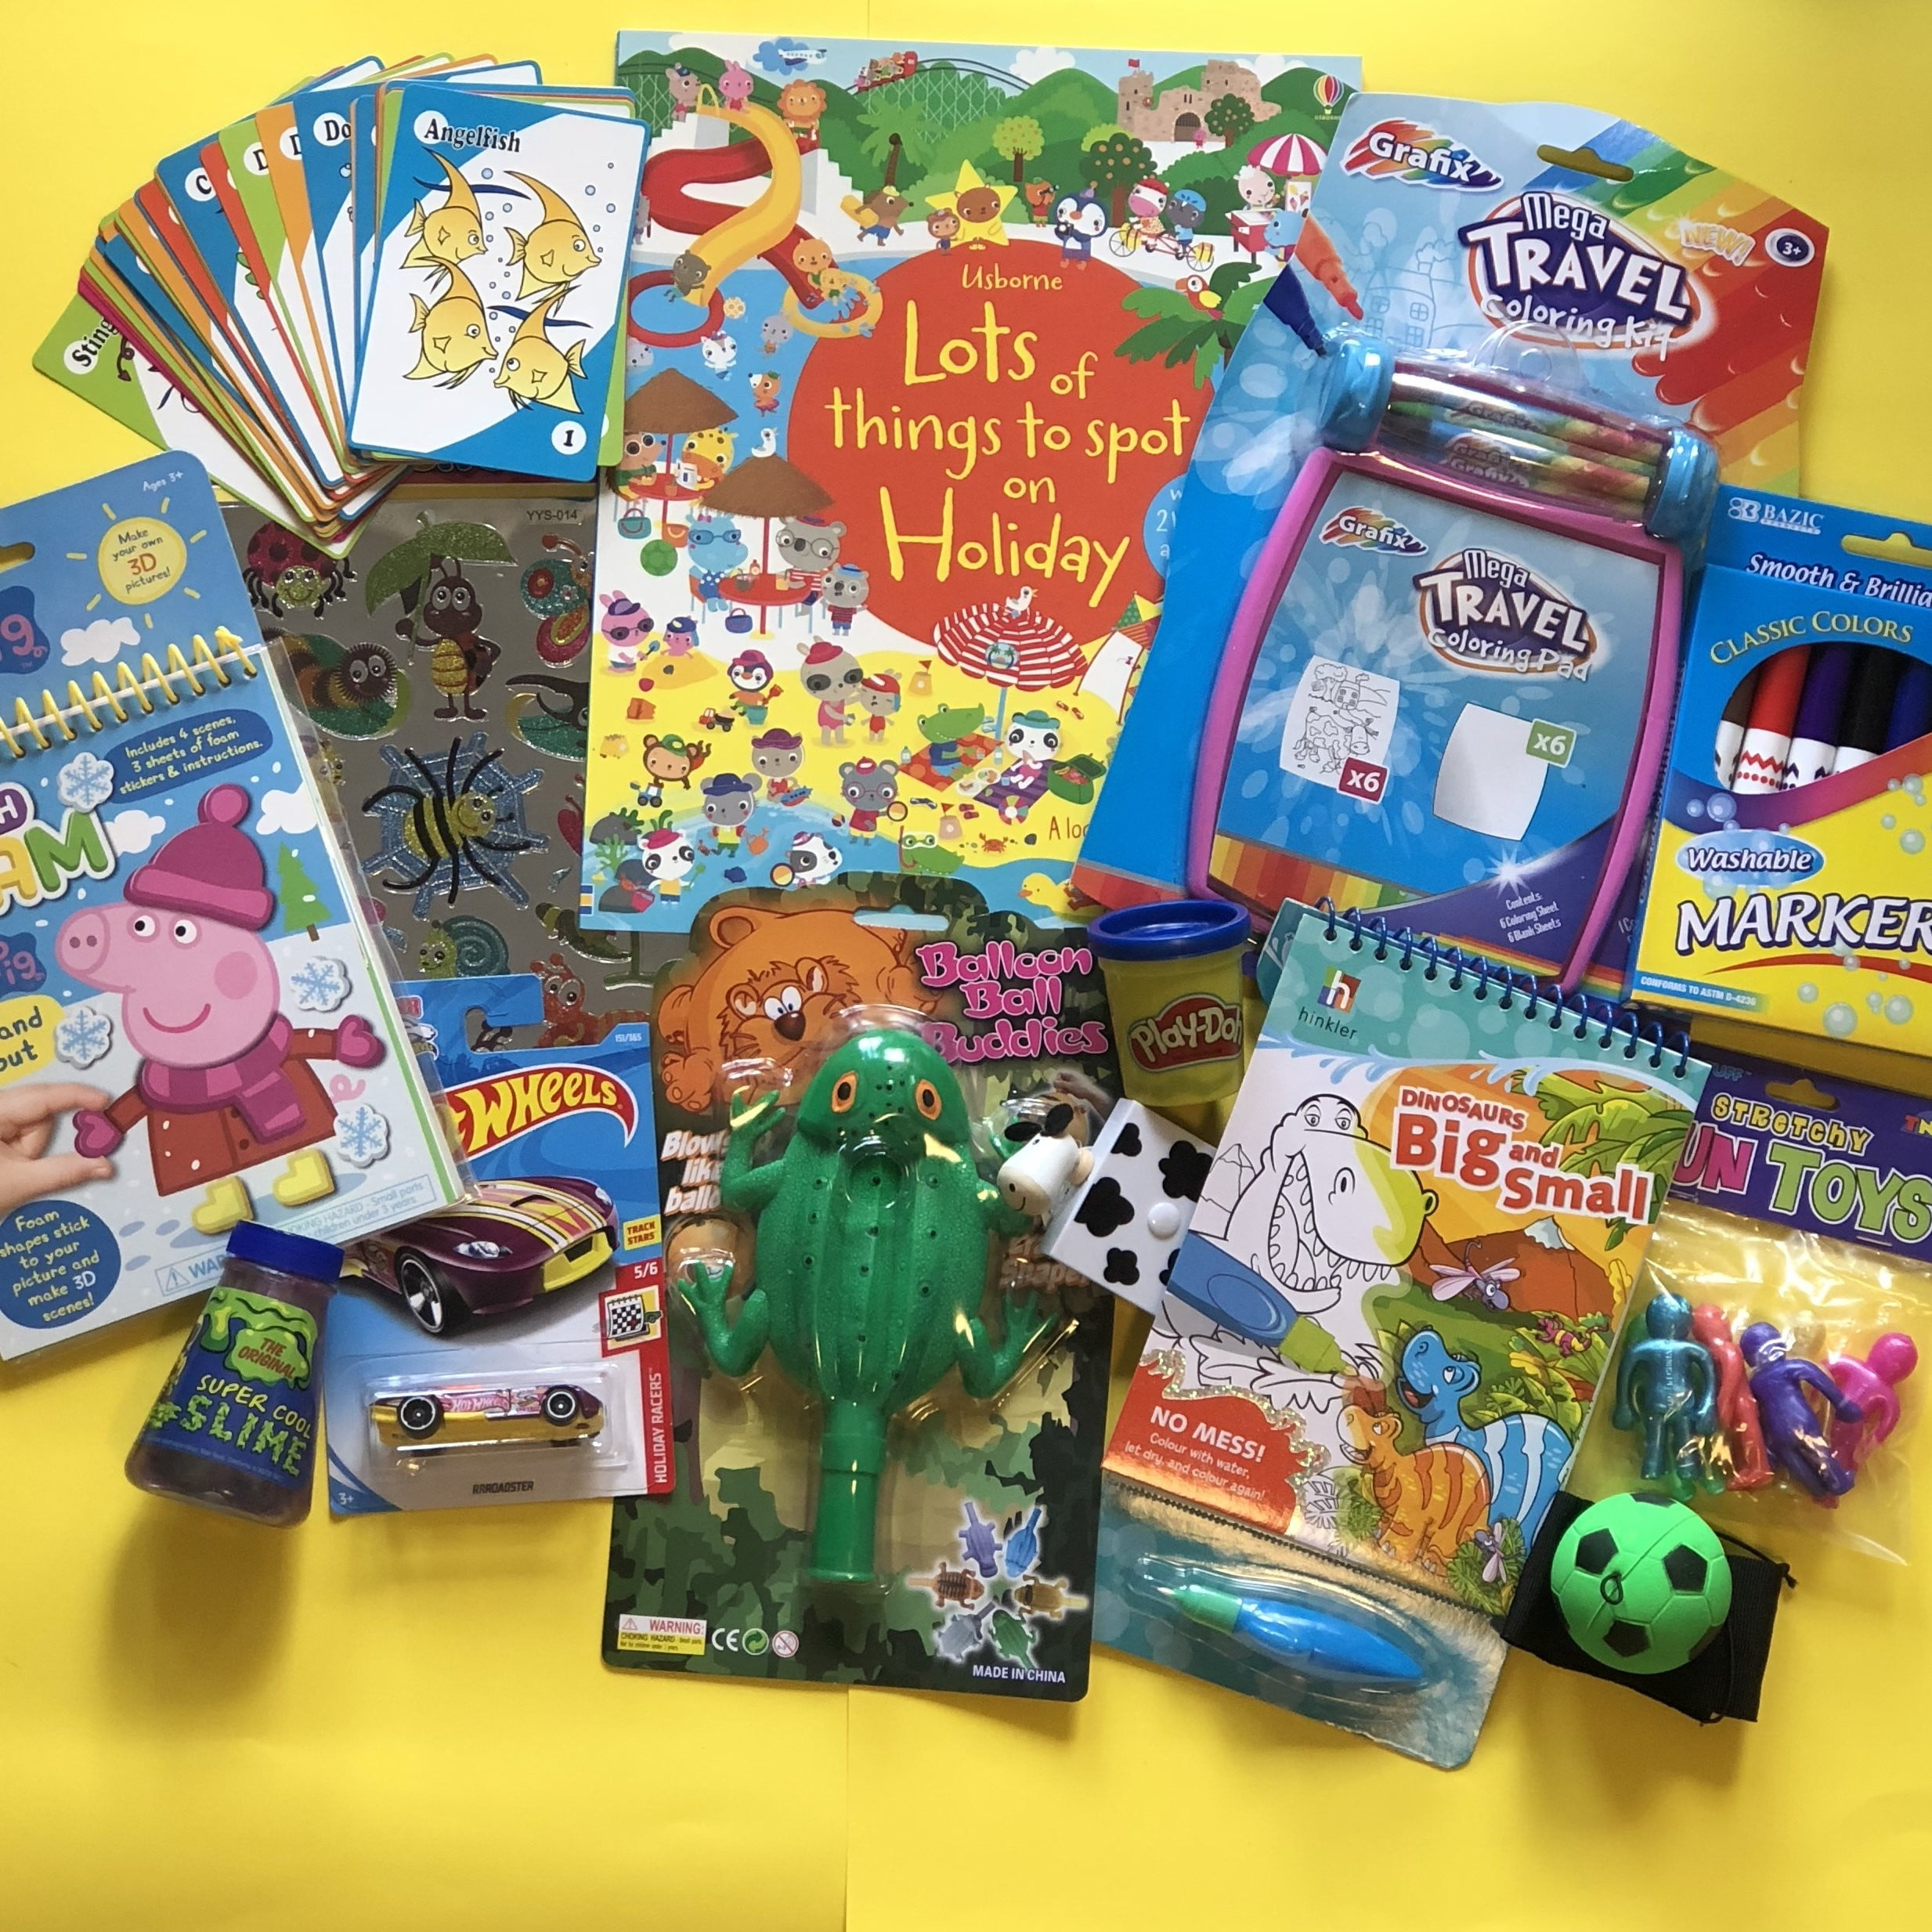 Kids books, travel toys and games, activity sticker books